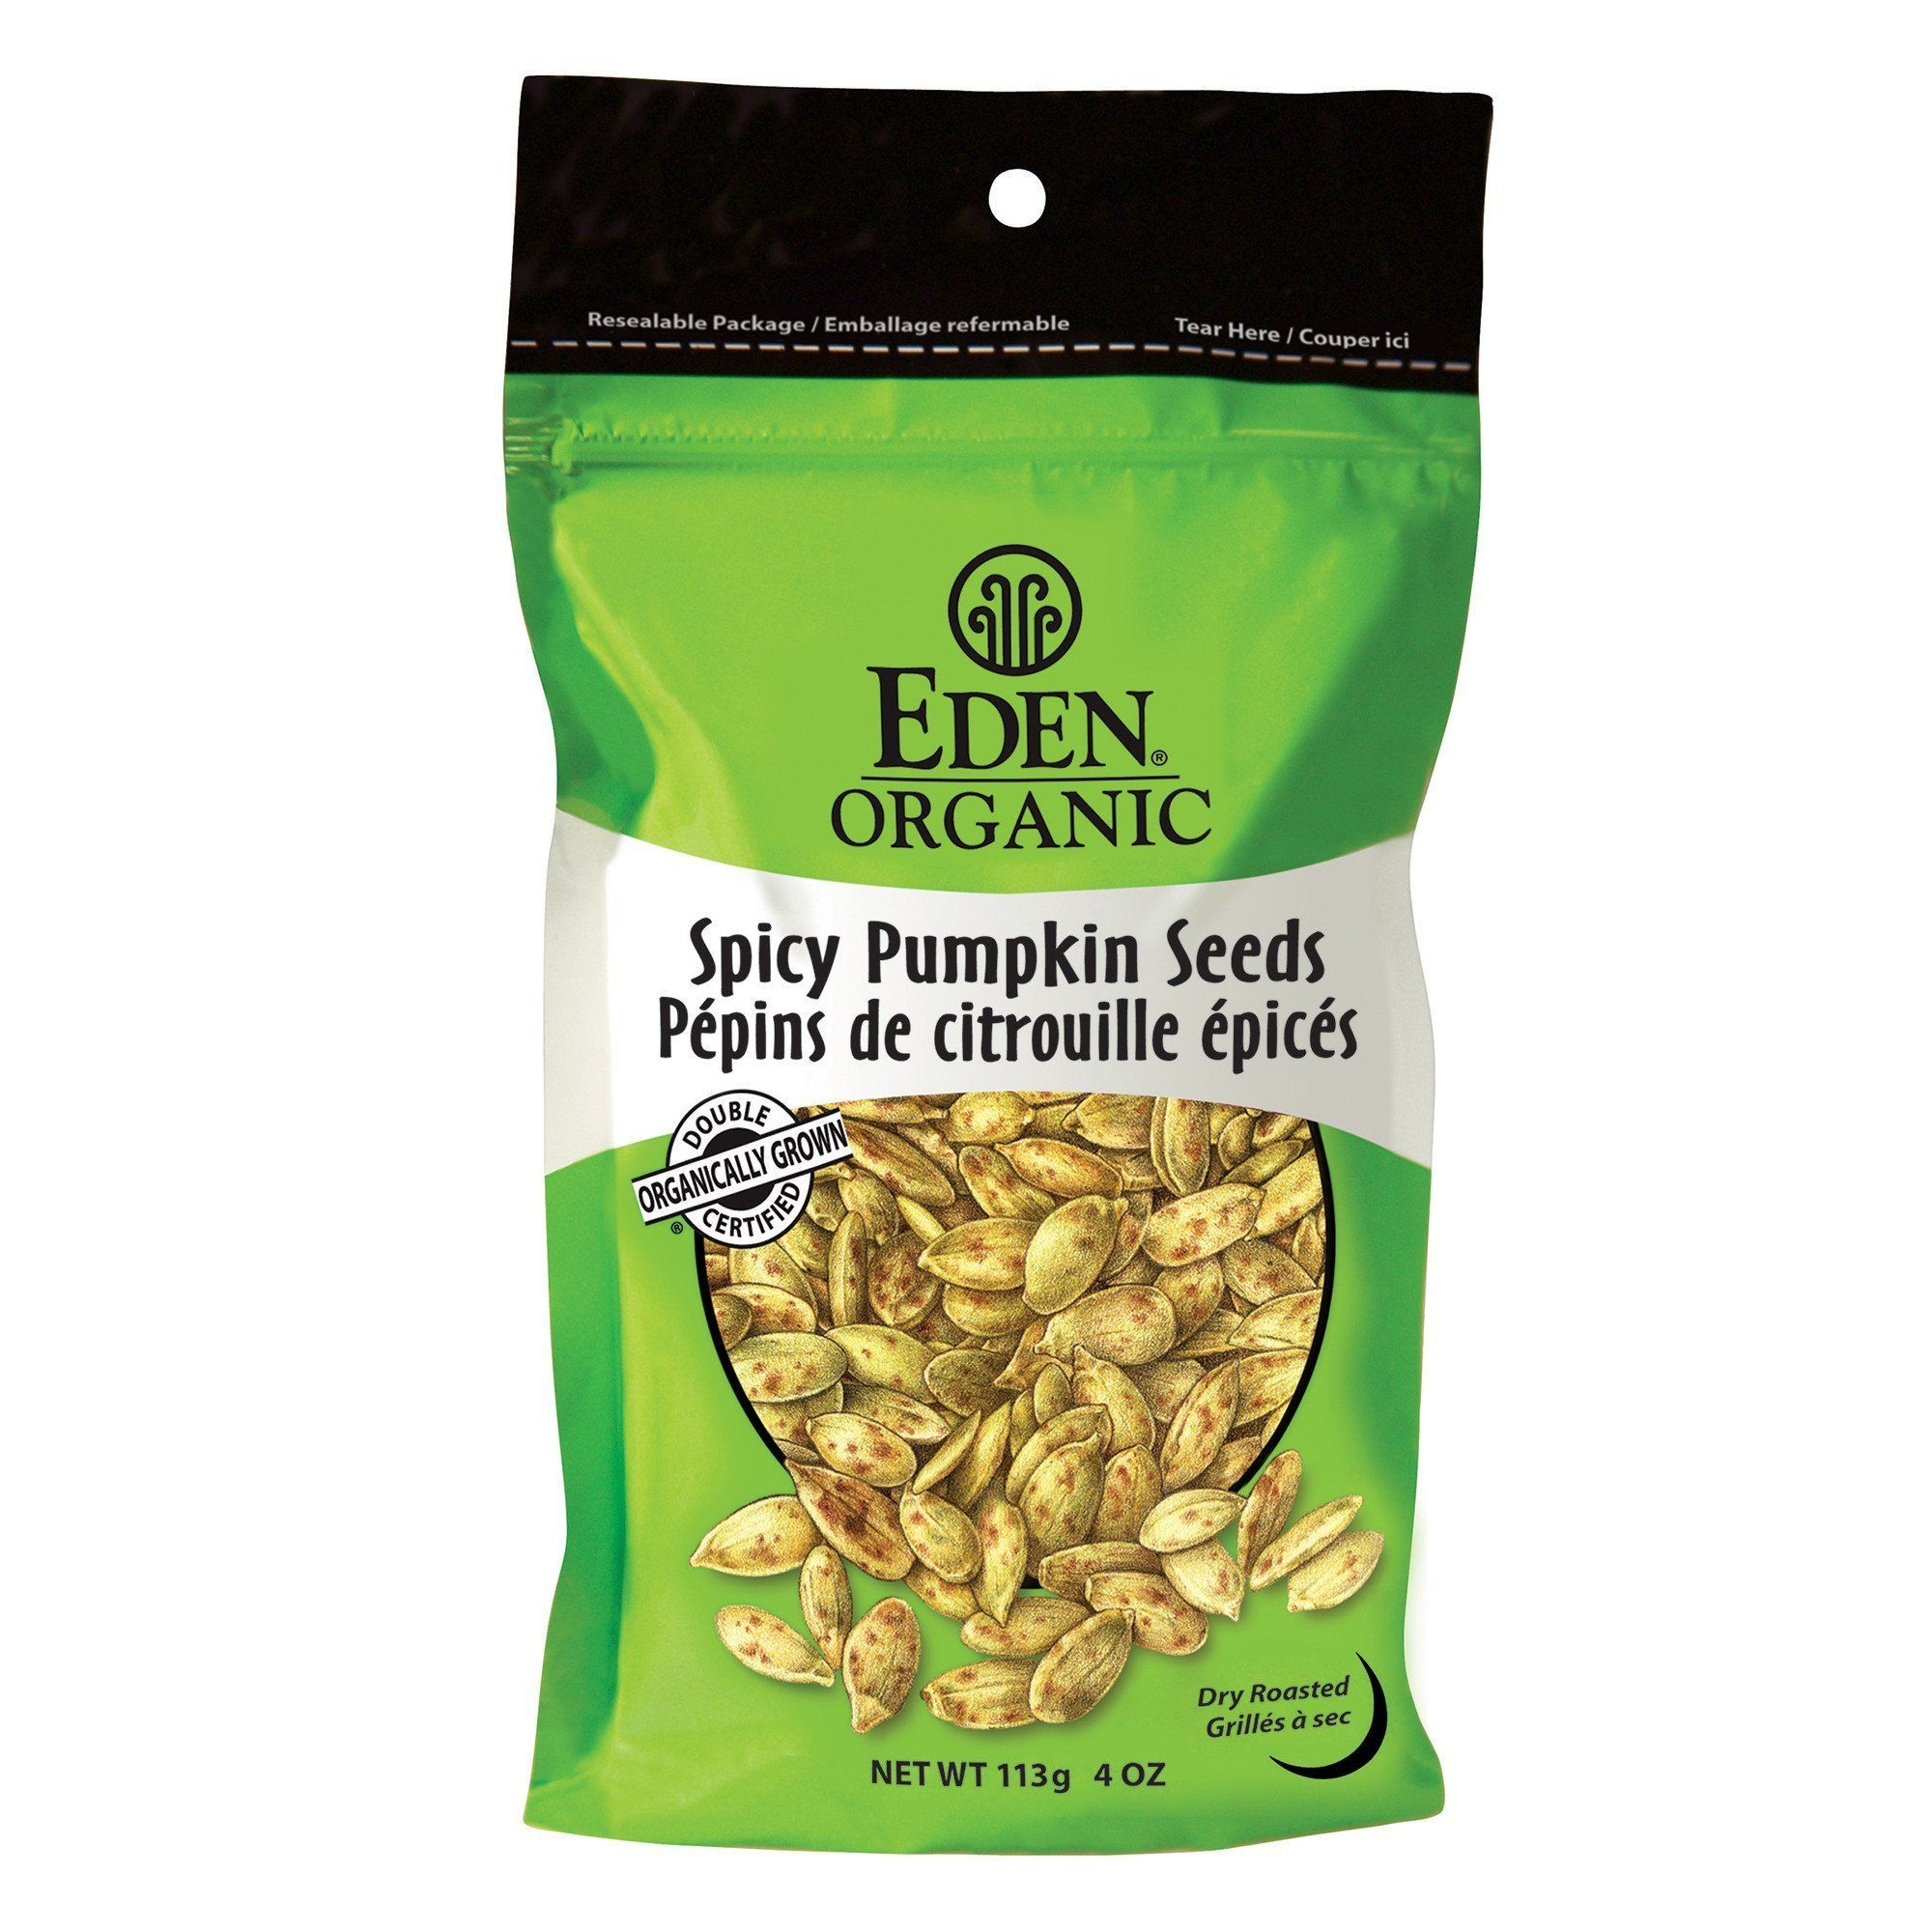 Food & Drink - Eden - Organic Spicy Pumpkin Seeds, 113g